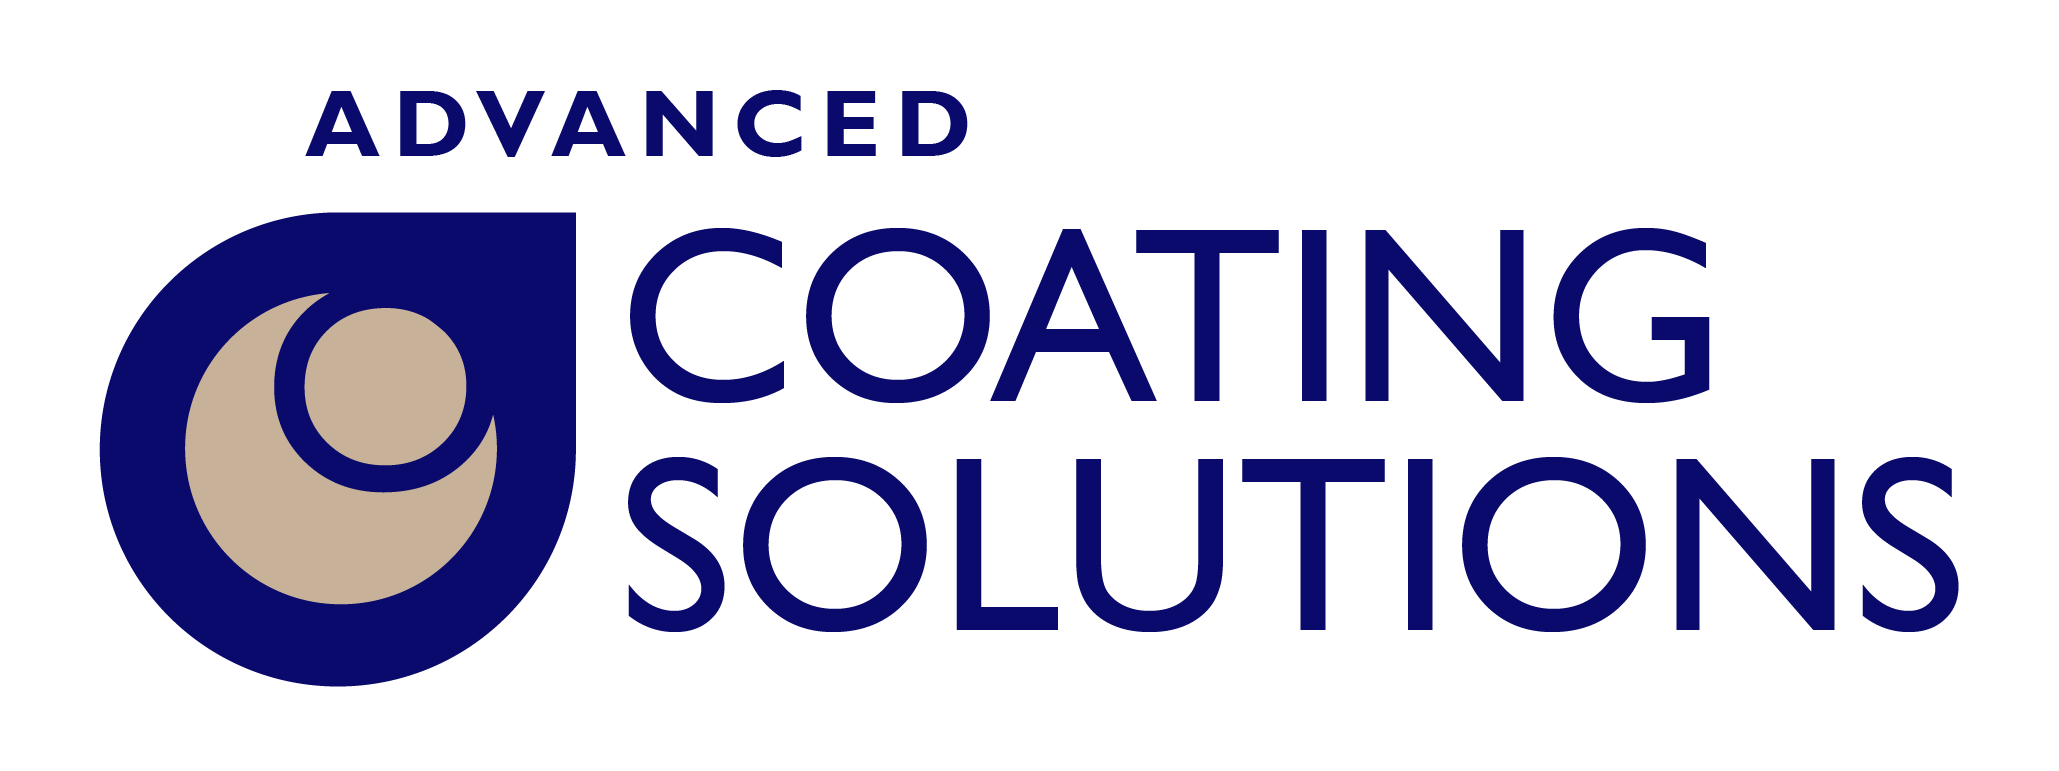 Advanced Coating Solutions